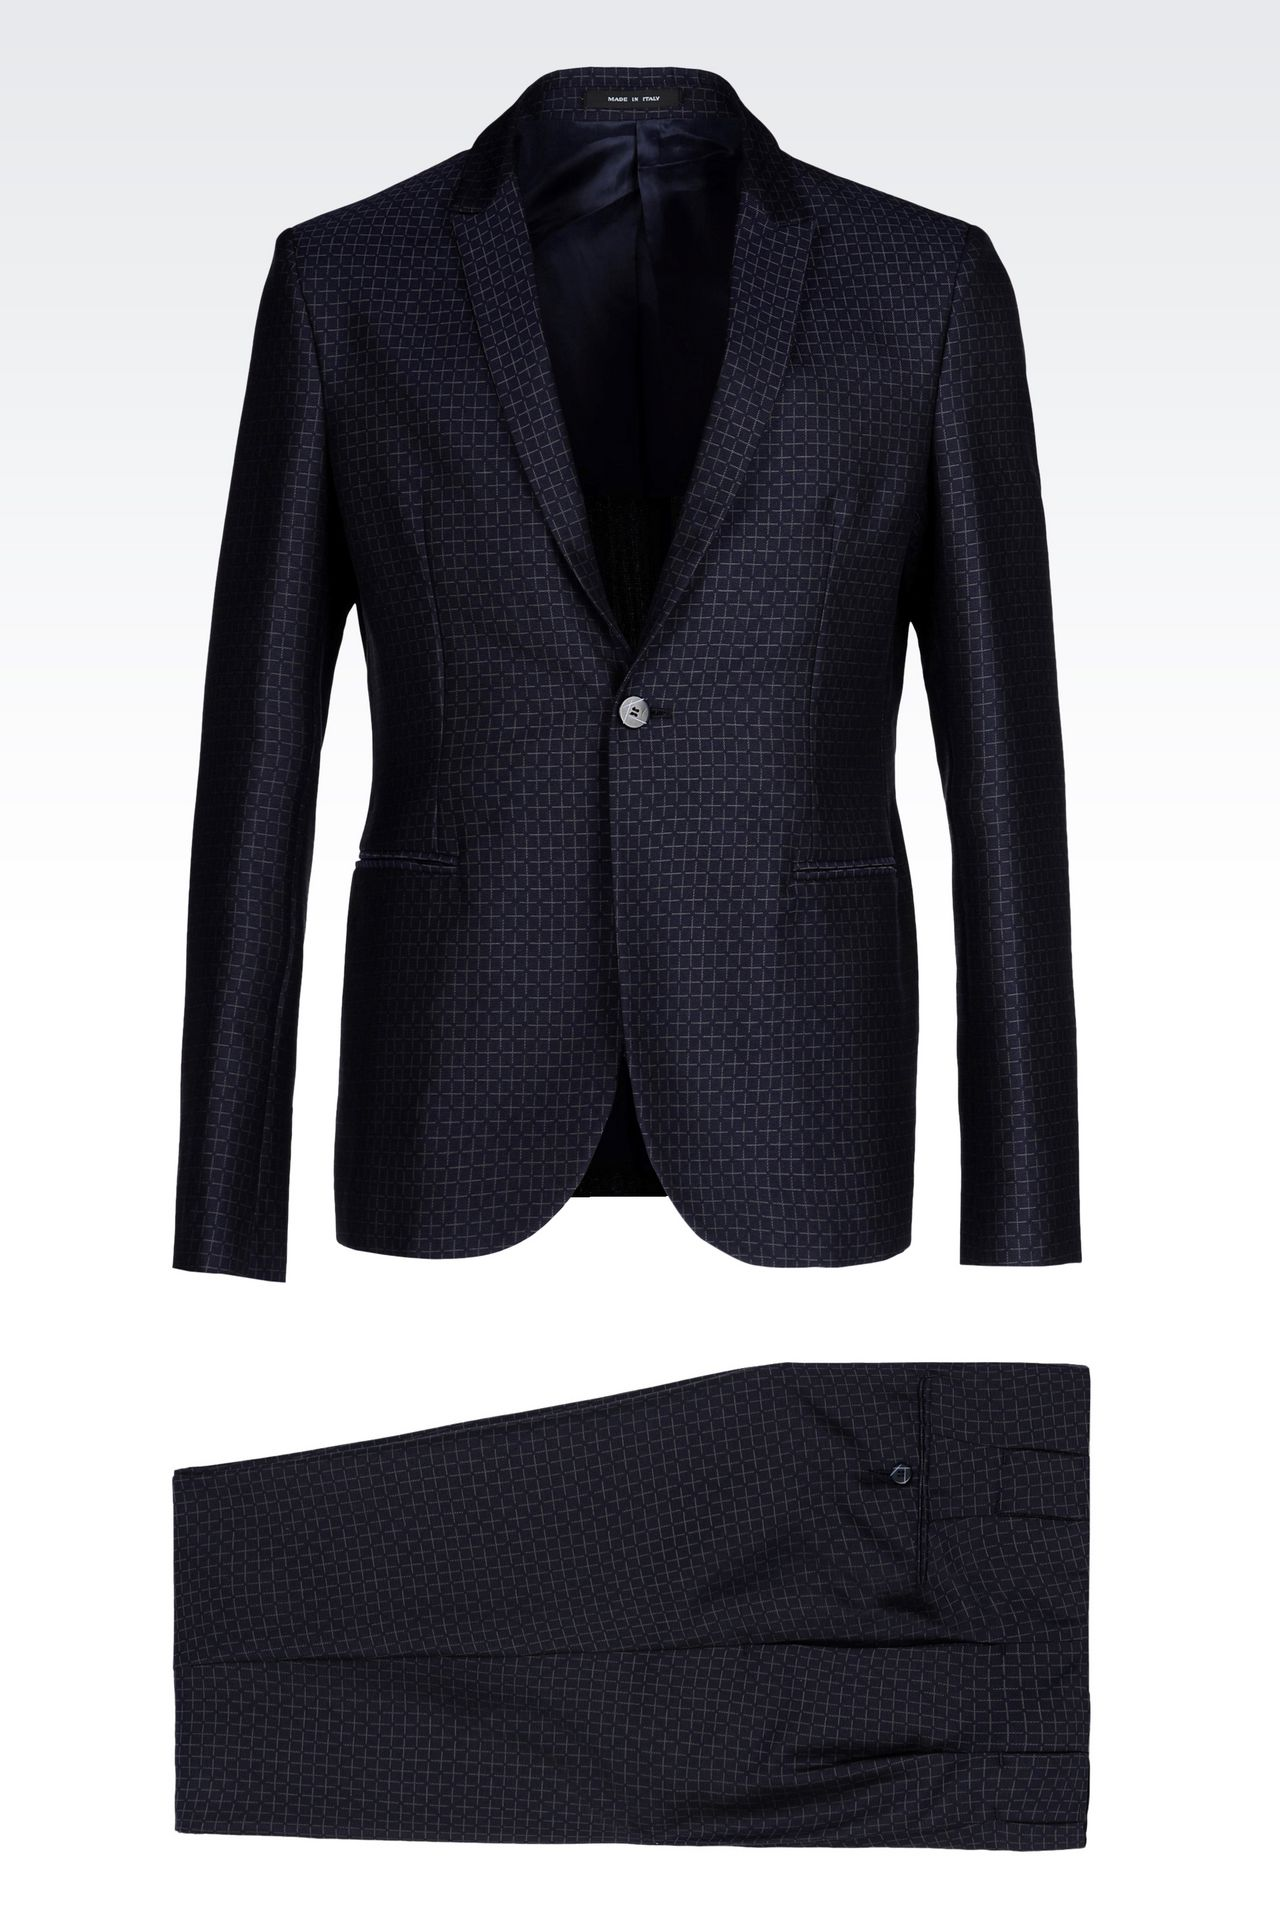 RUNWAY SUIT IN JACQUARD WOOL: One button suits Men by Armani - 0